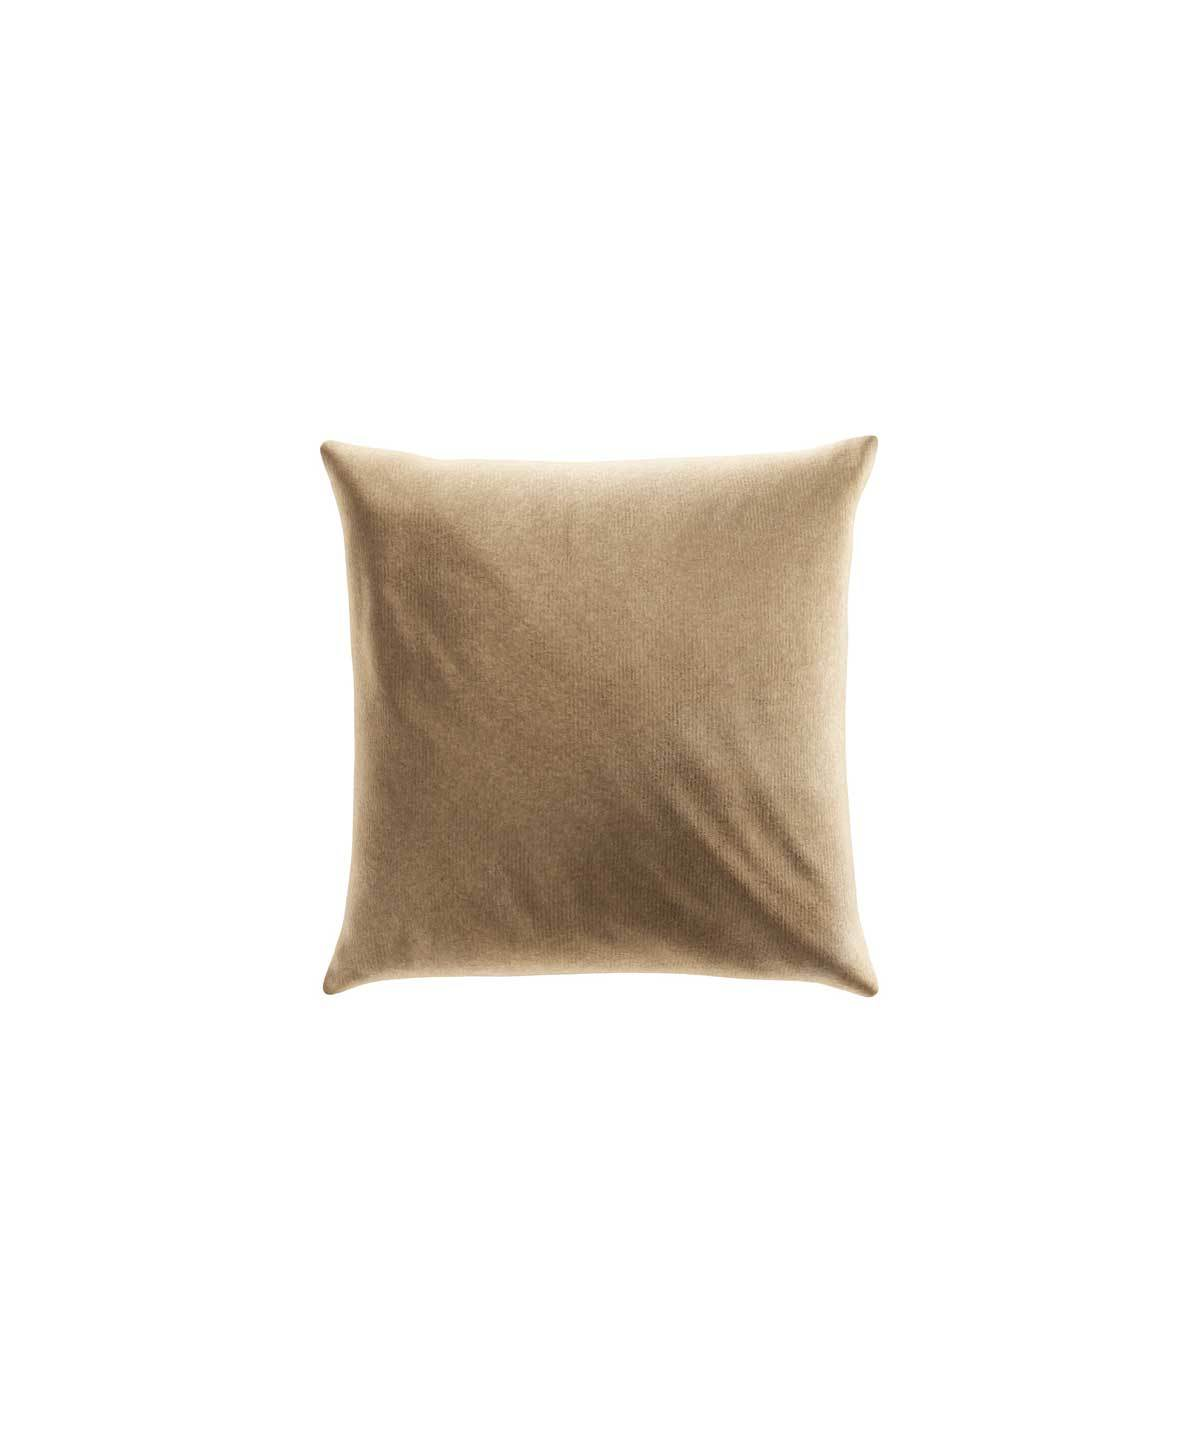 "18"" Throw Pillow in Camel by TRNK 